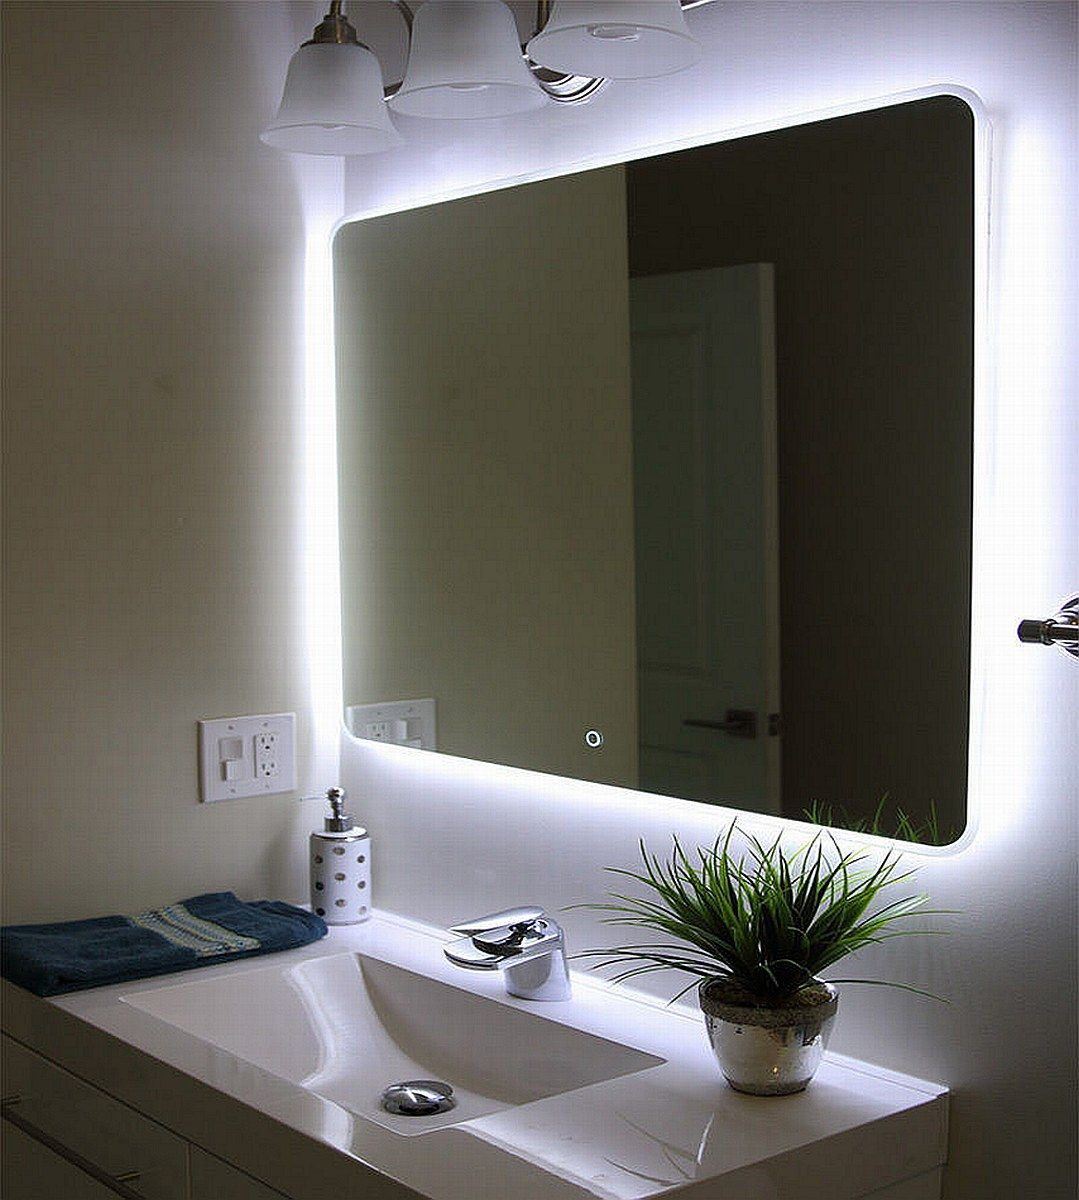 25 Diy Vanity Mirror Ideas With Lights With Images Bathroom